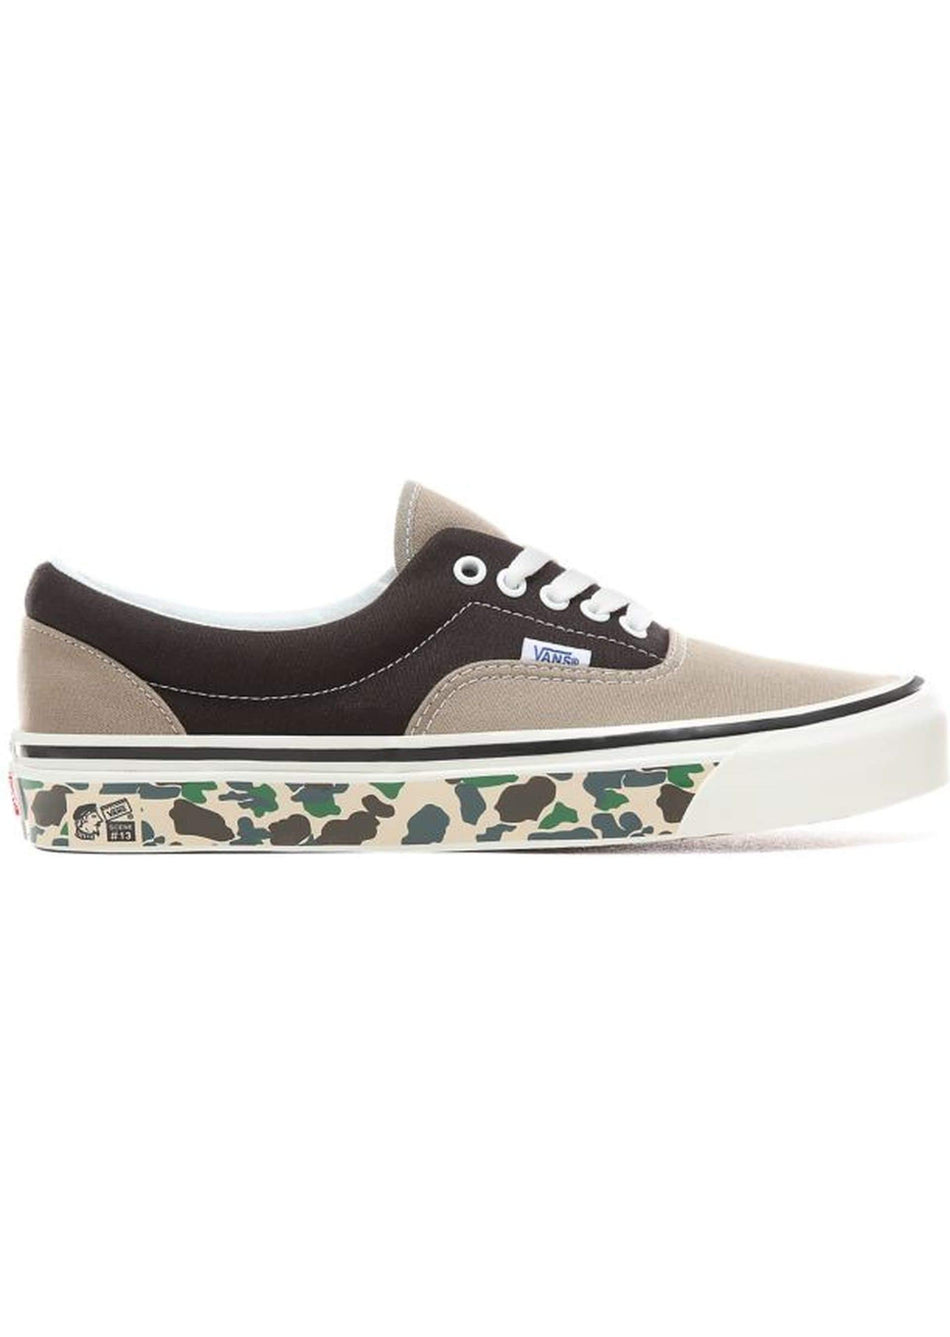 vans era 95 dx (anaheim factory) camo/black VANS - Vittorio Citro Boutique